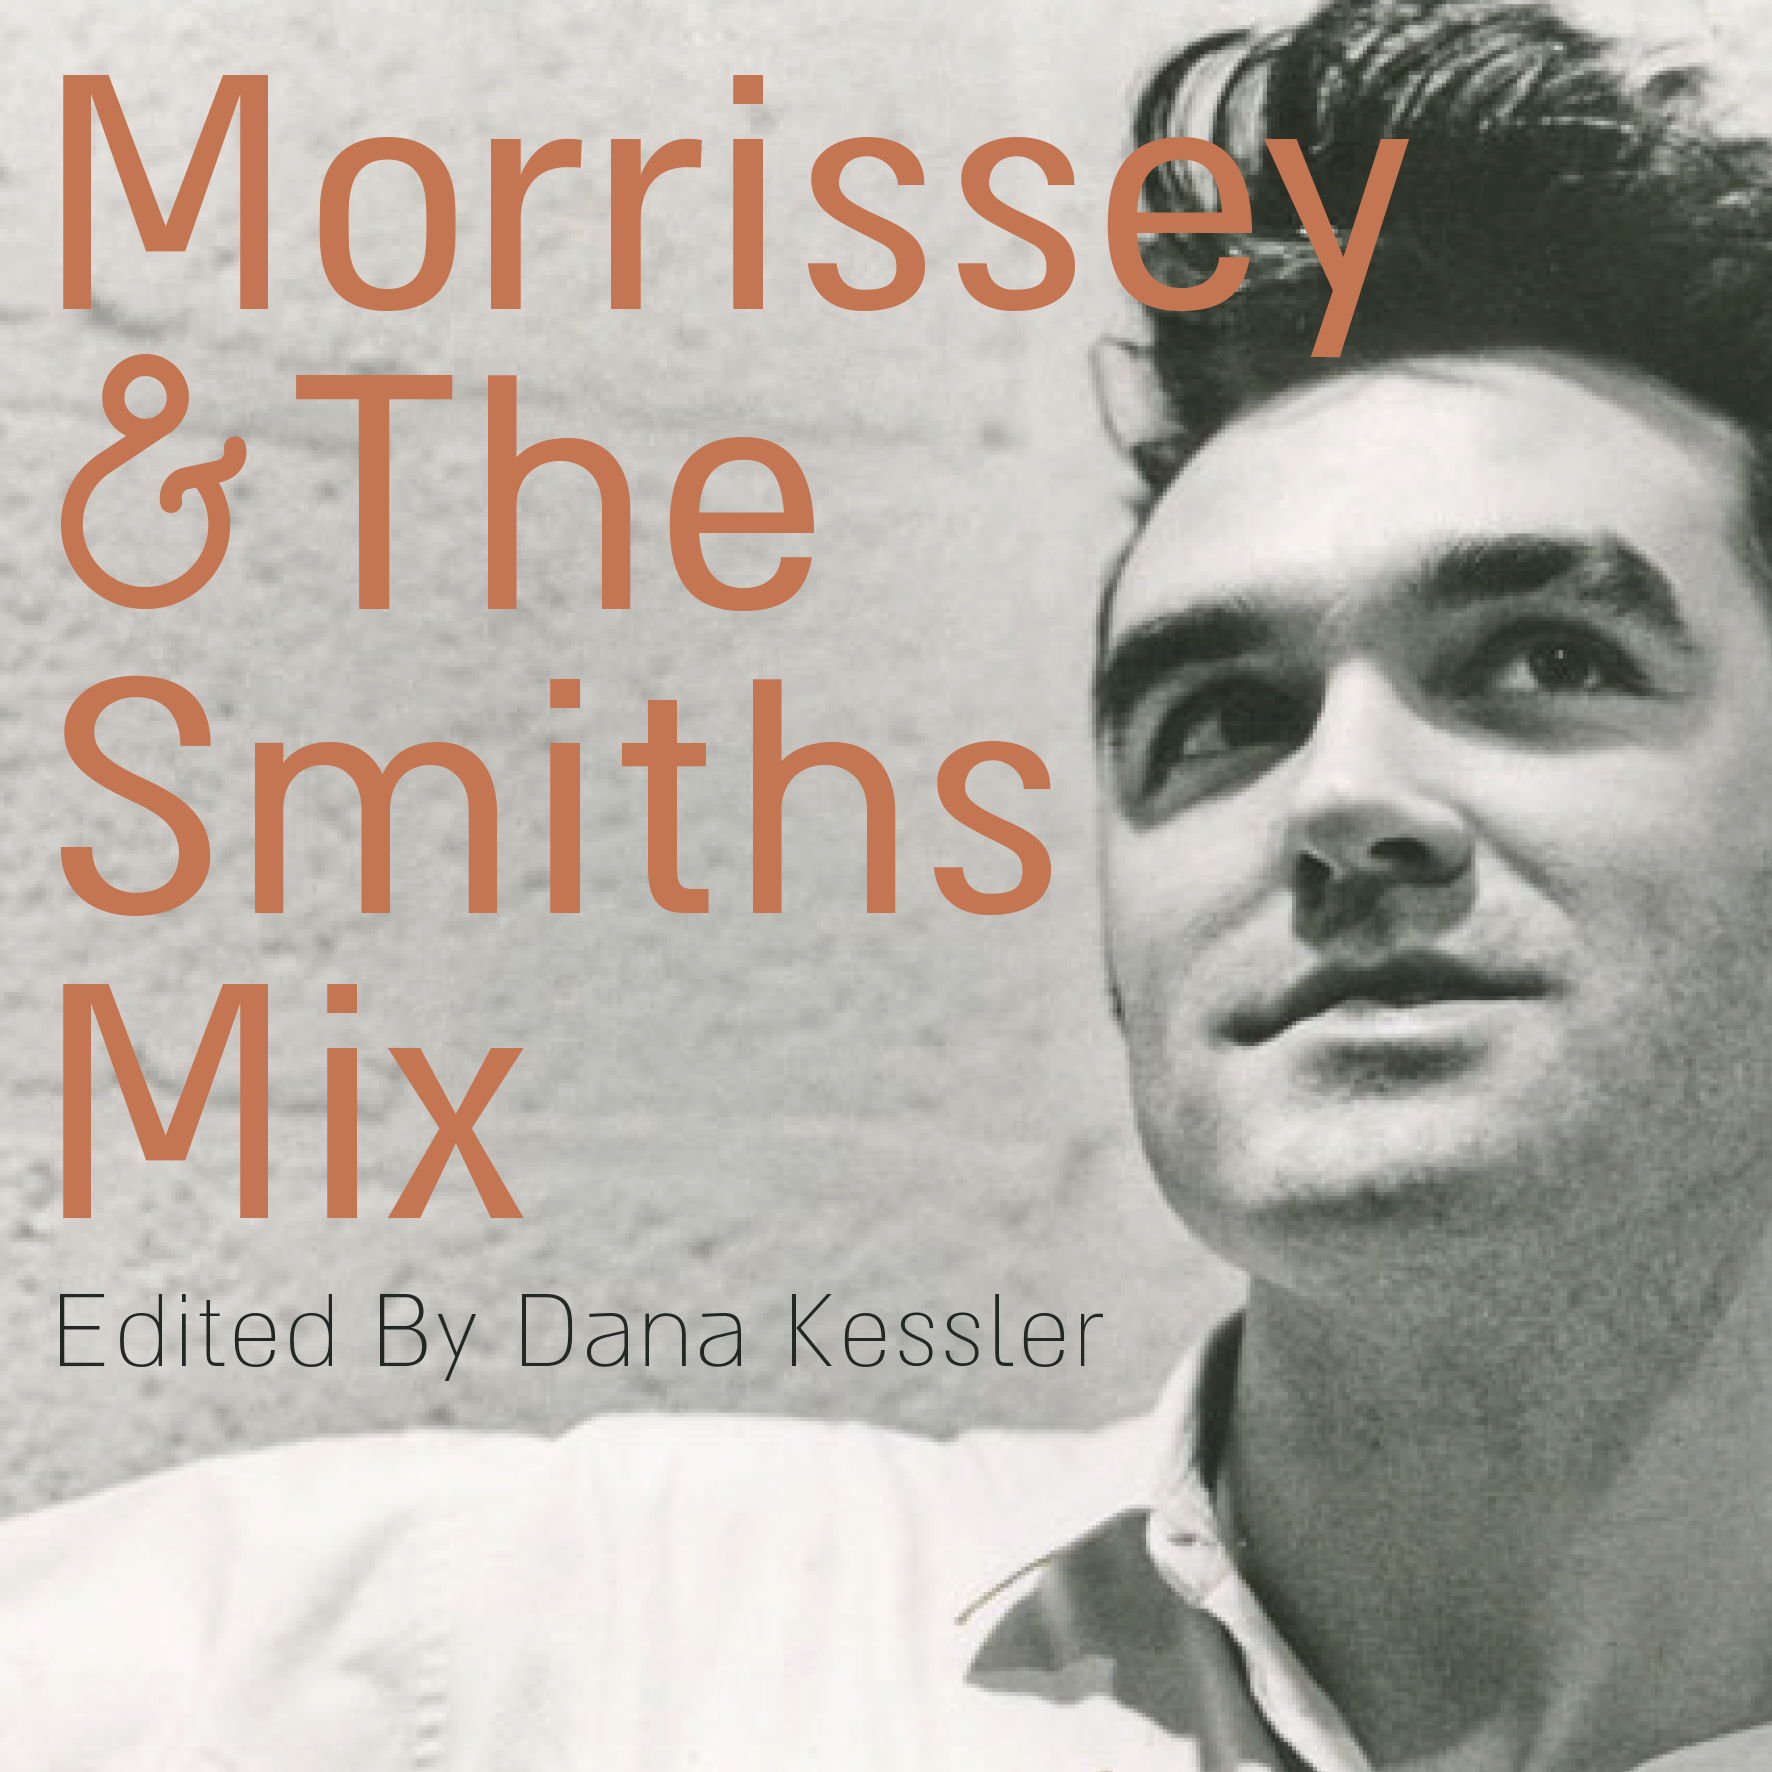 Morrissey and The Smiths mix